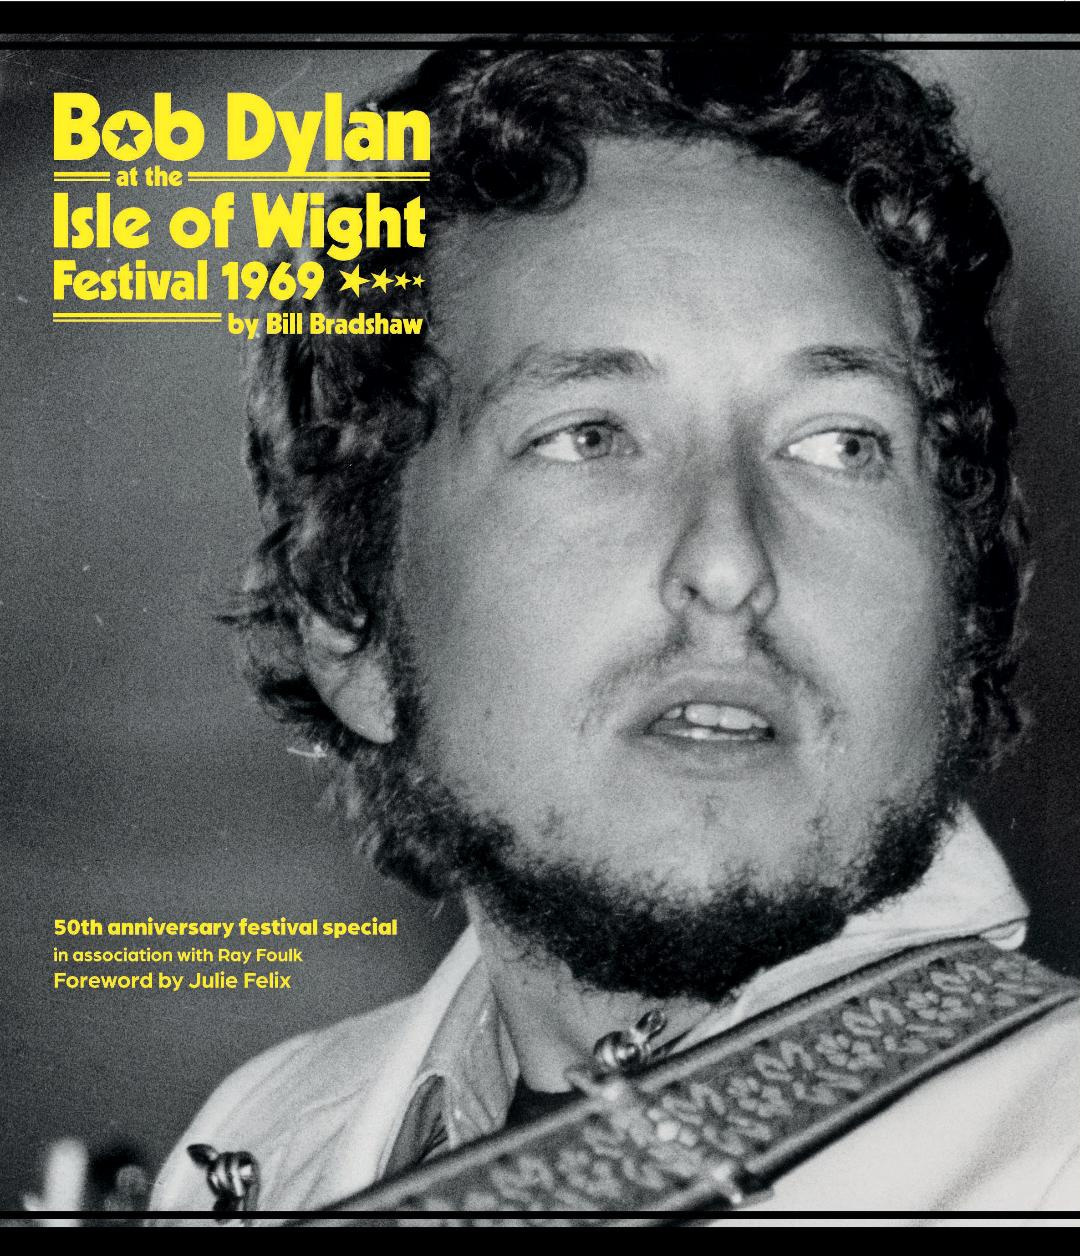 Bob Dylan at the Isle of Wight, 1969: this book takes a revealing new look on the 50th anniversary.